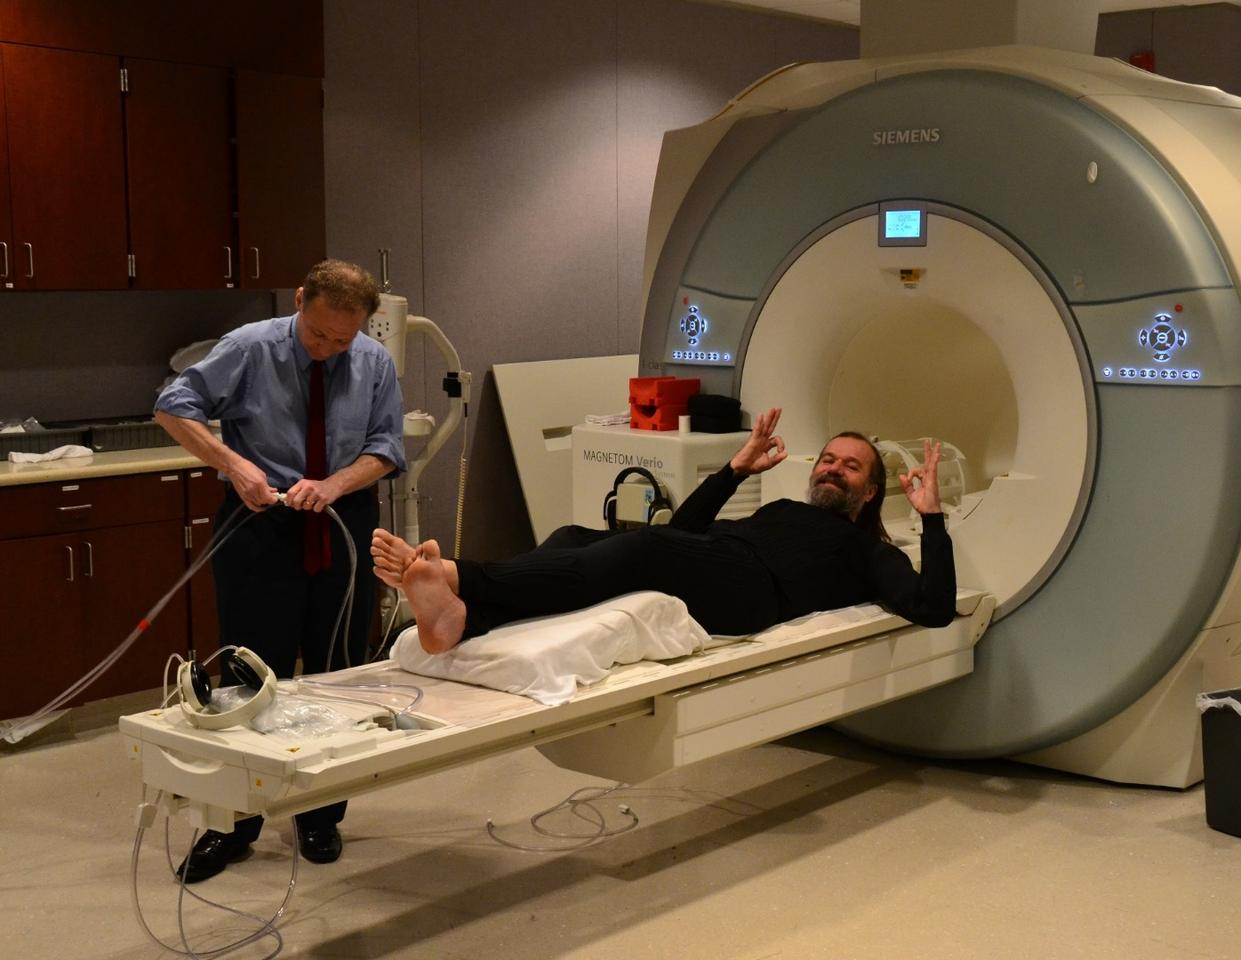 """Iceman"" Wim Hof dons a temperature-controlling bodysuit ahead of an fMRI test"